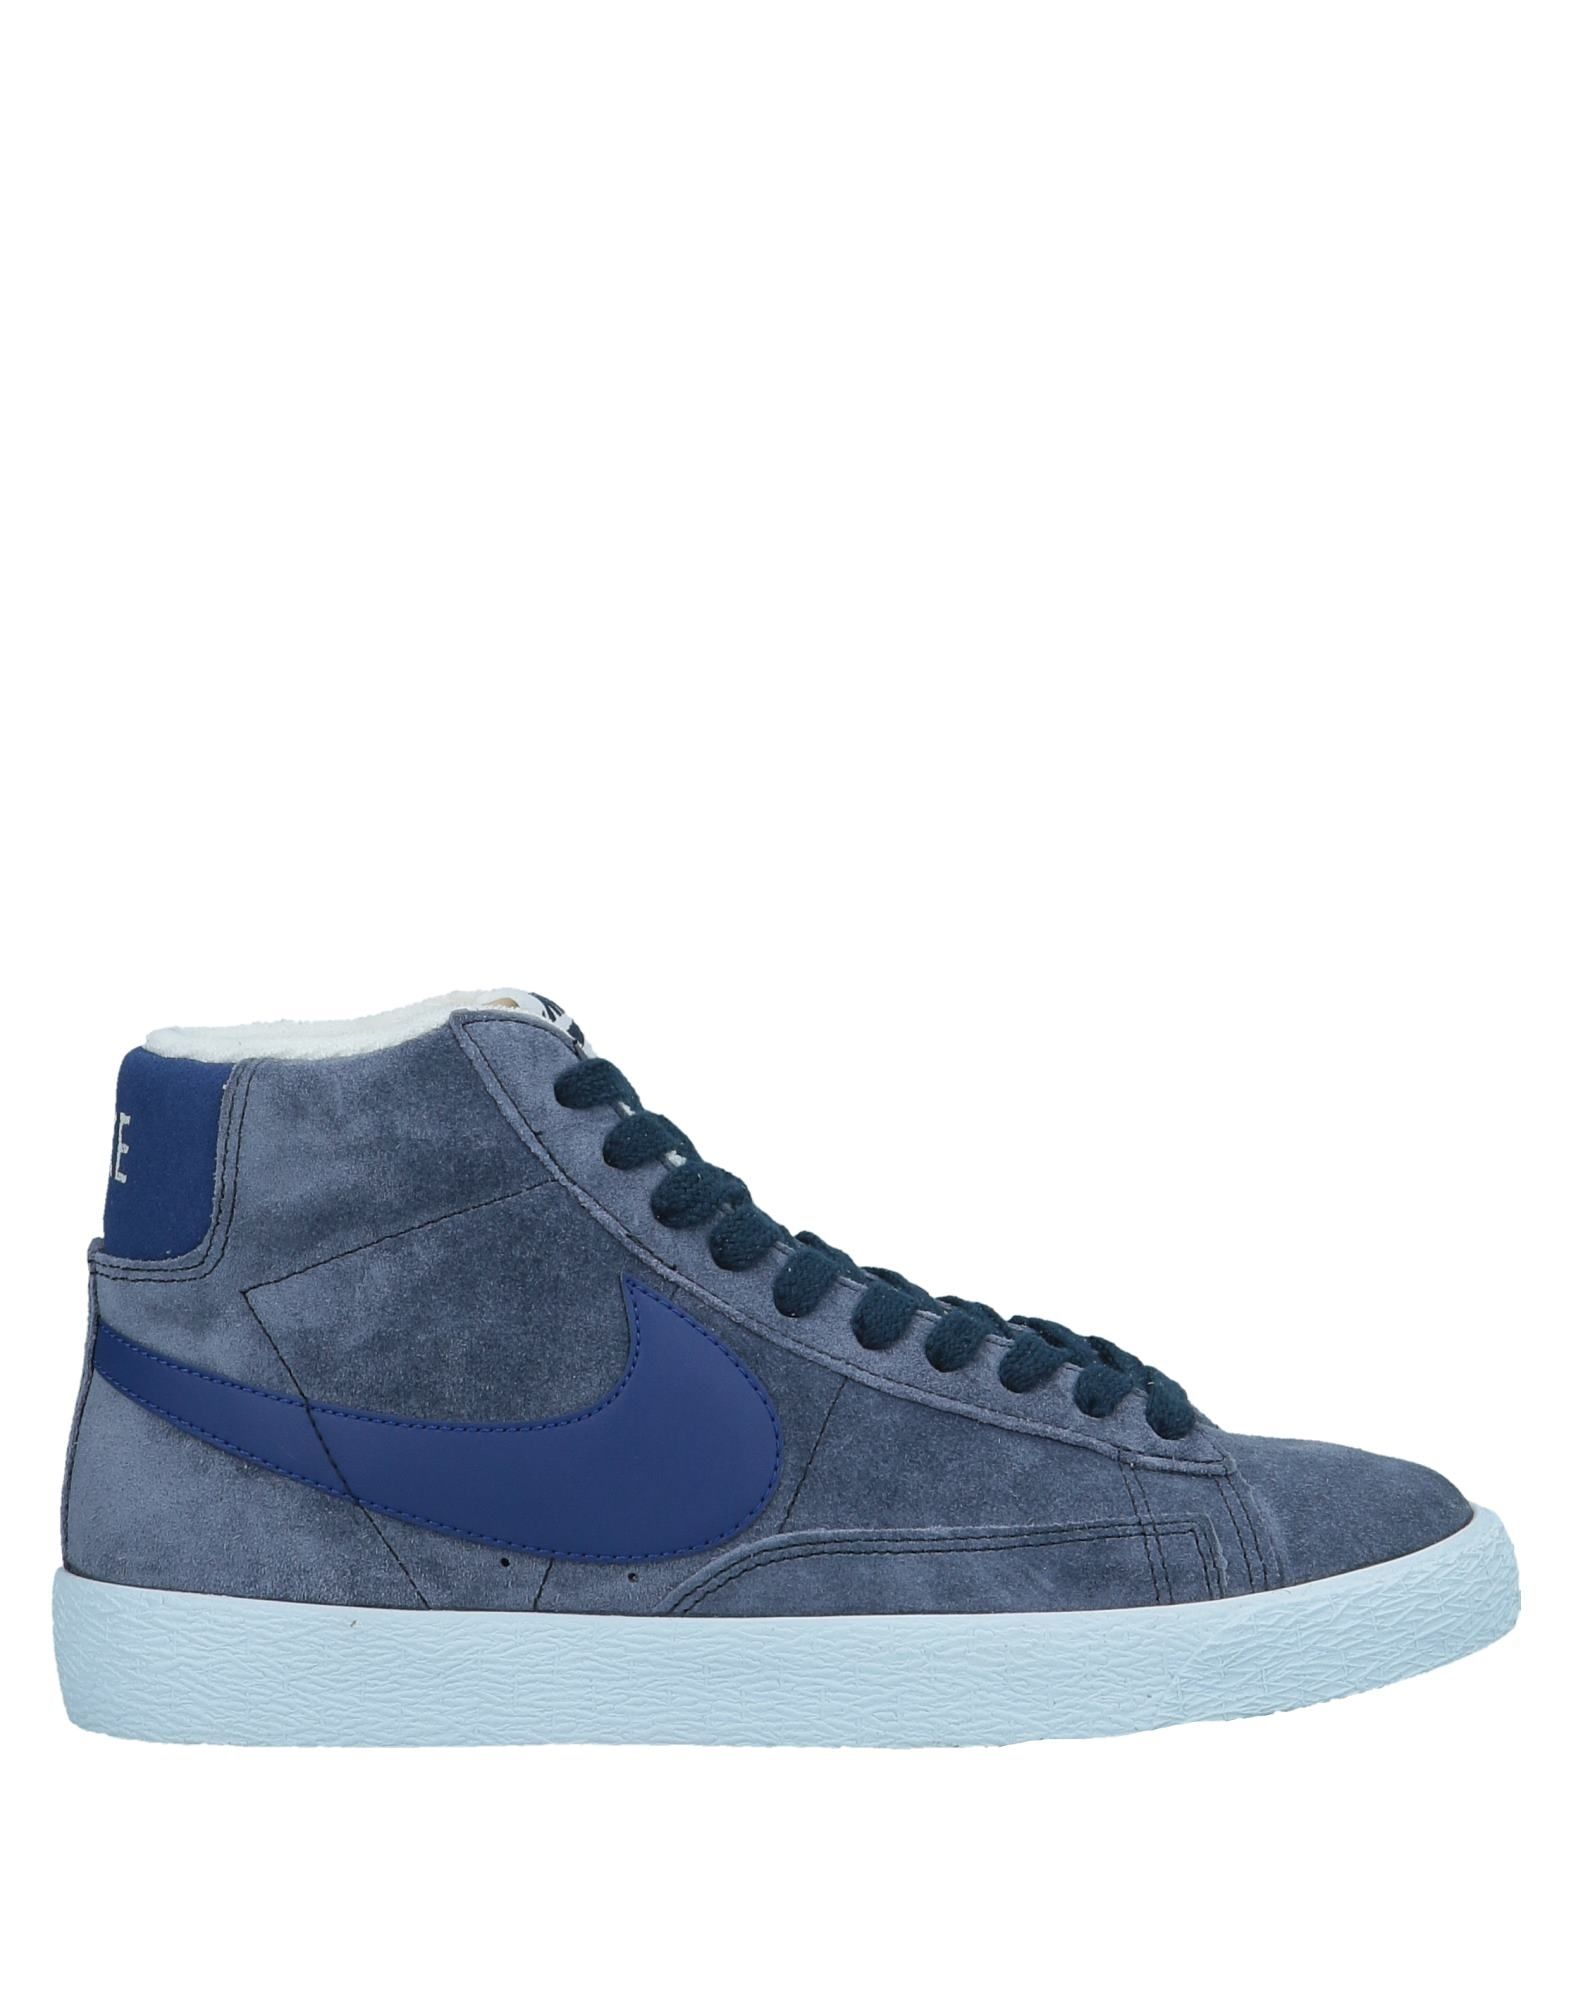 Nike Sneakers - on Women Nike Sneakers online on -  Canada - 11572822BQ e2b437